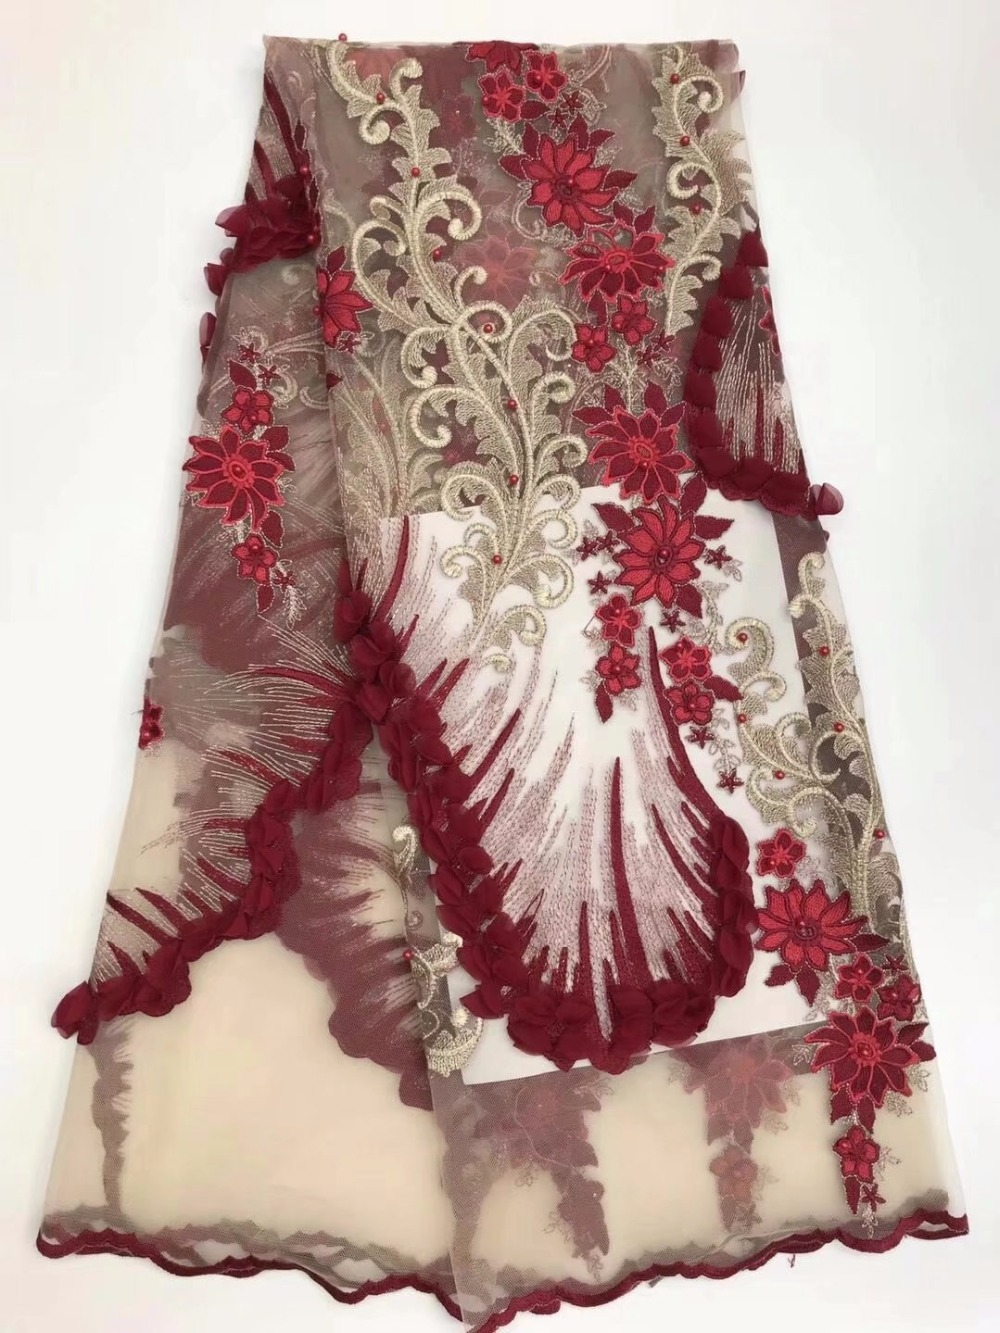 wine lace fabric handmade beaded nigerian lace fabric 2018 high quality lace 3d flower embroidered tulle 5yardlotMJF-17